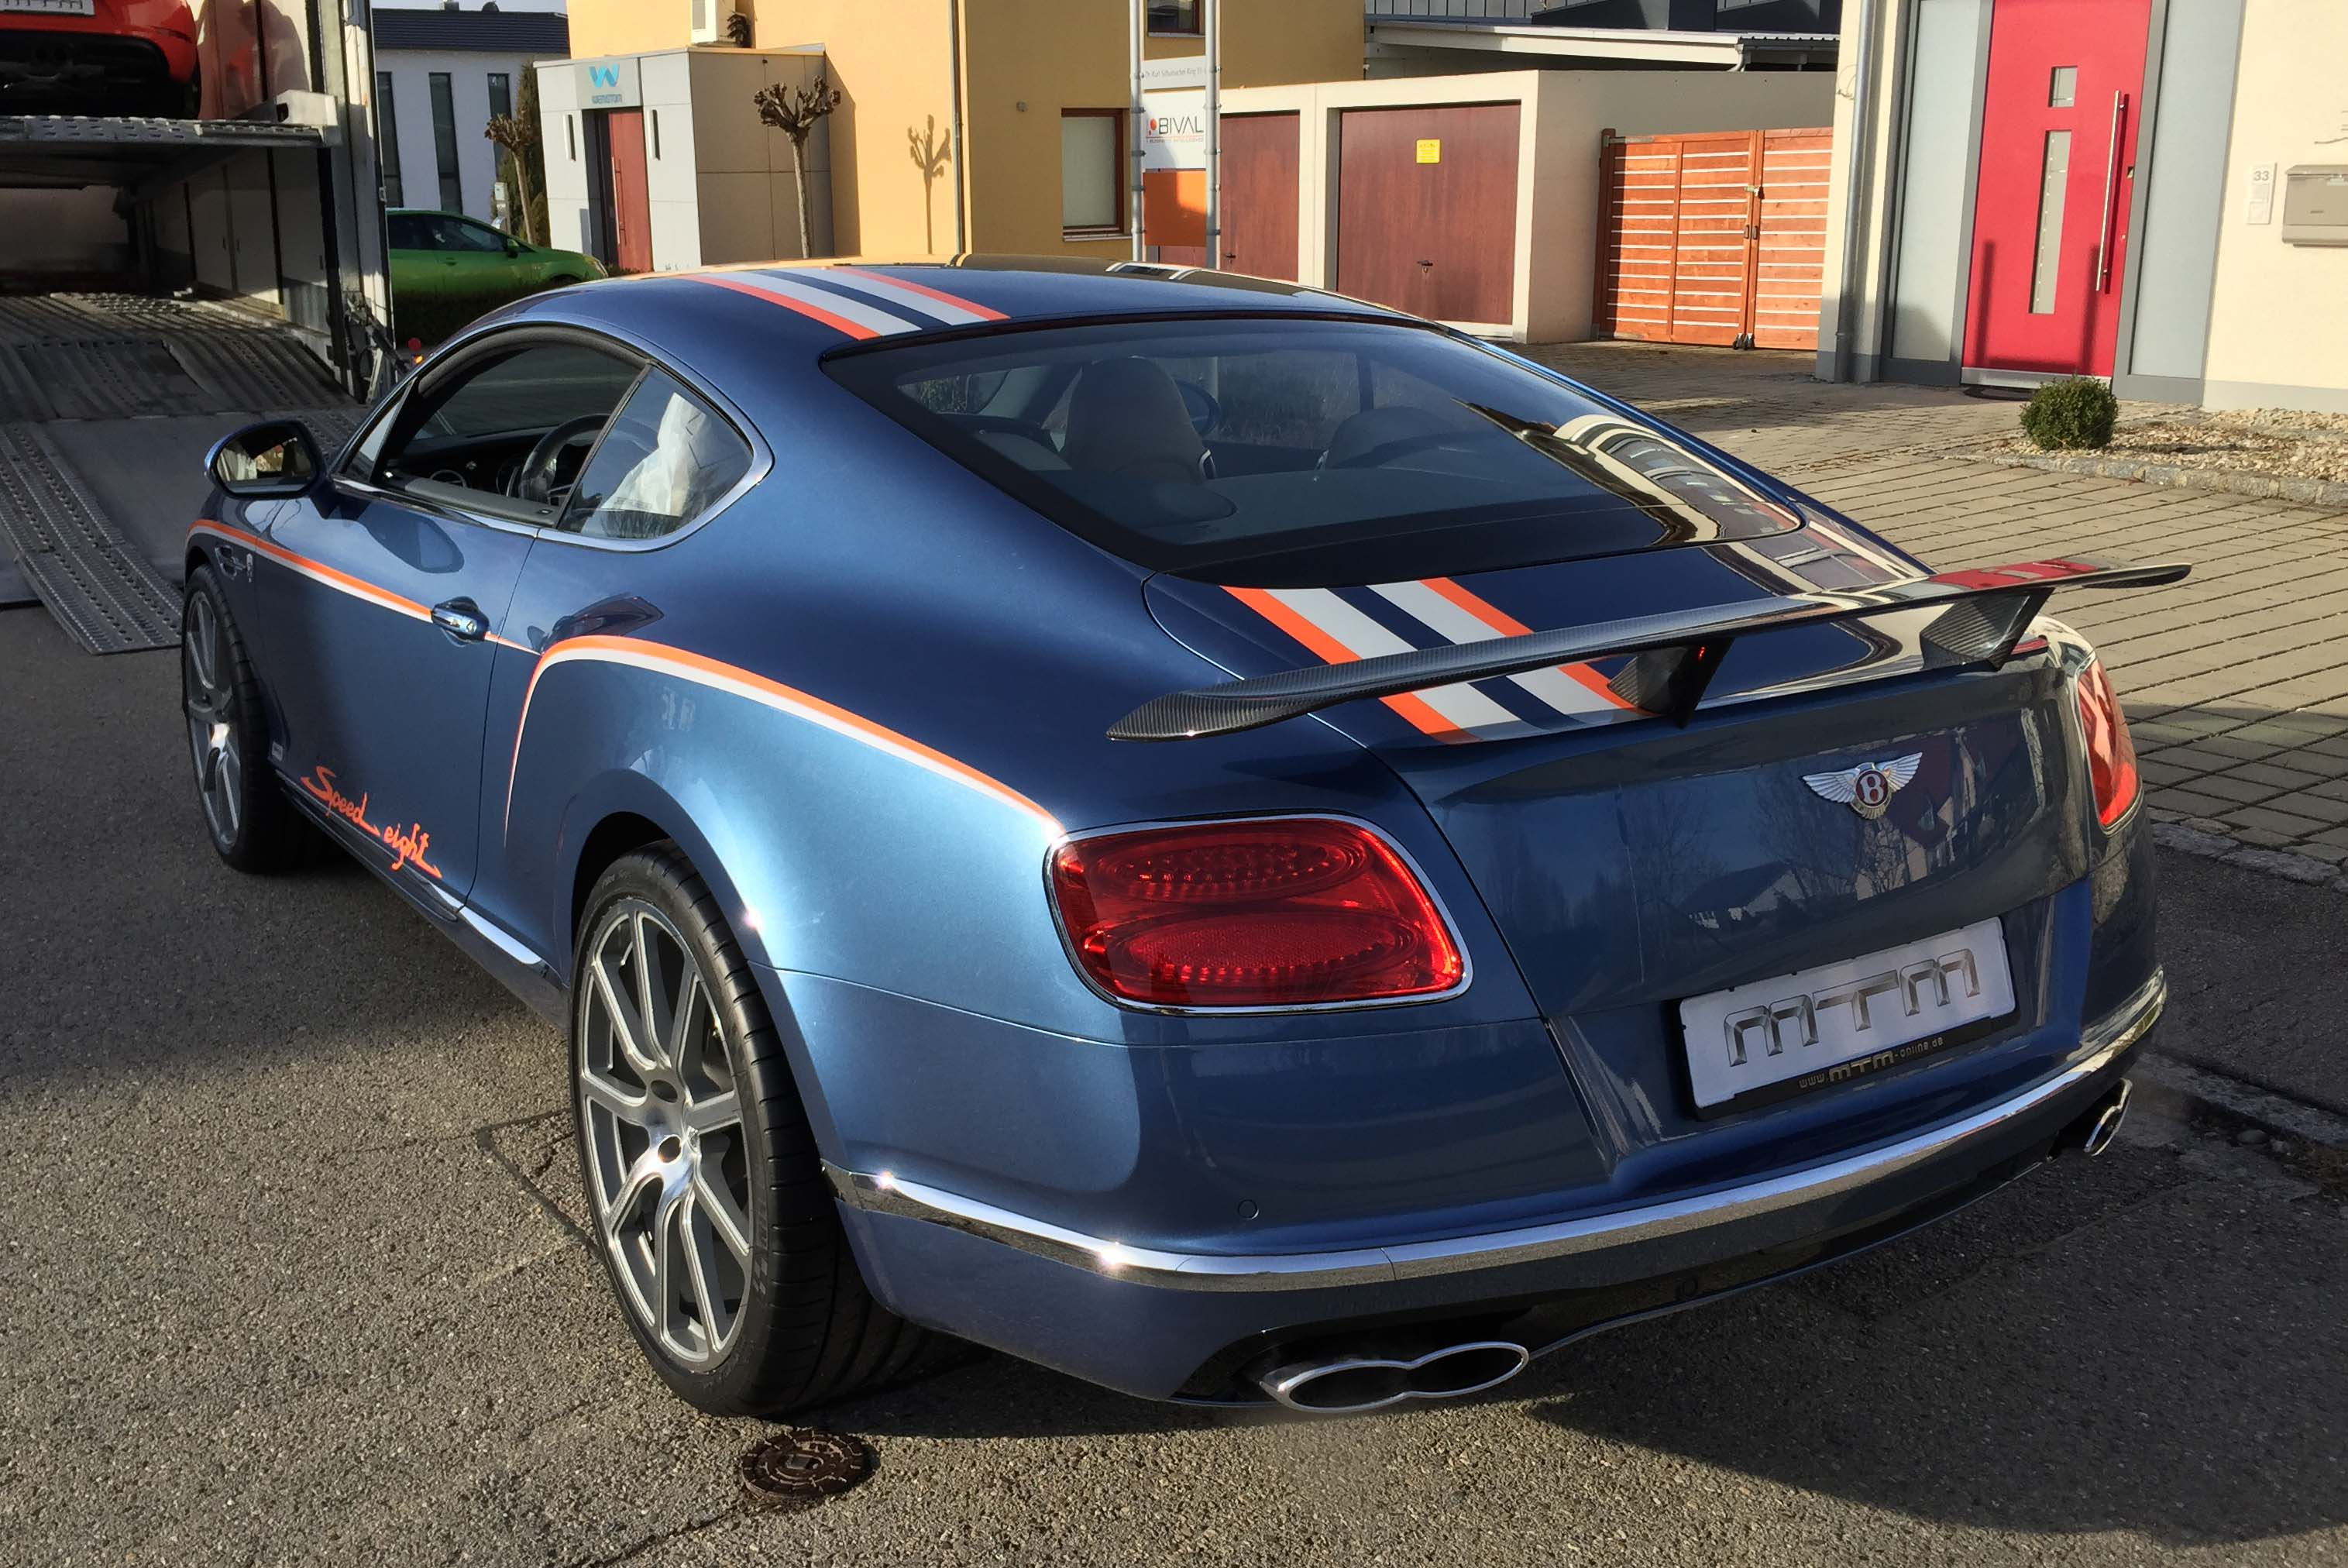 mtm-bentley-gt-birkin-edition-speed-eight-design-carwrap